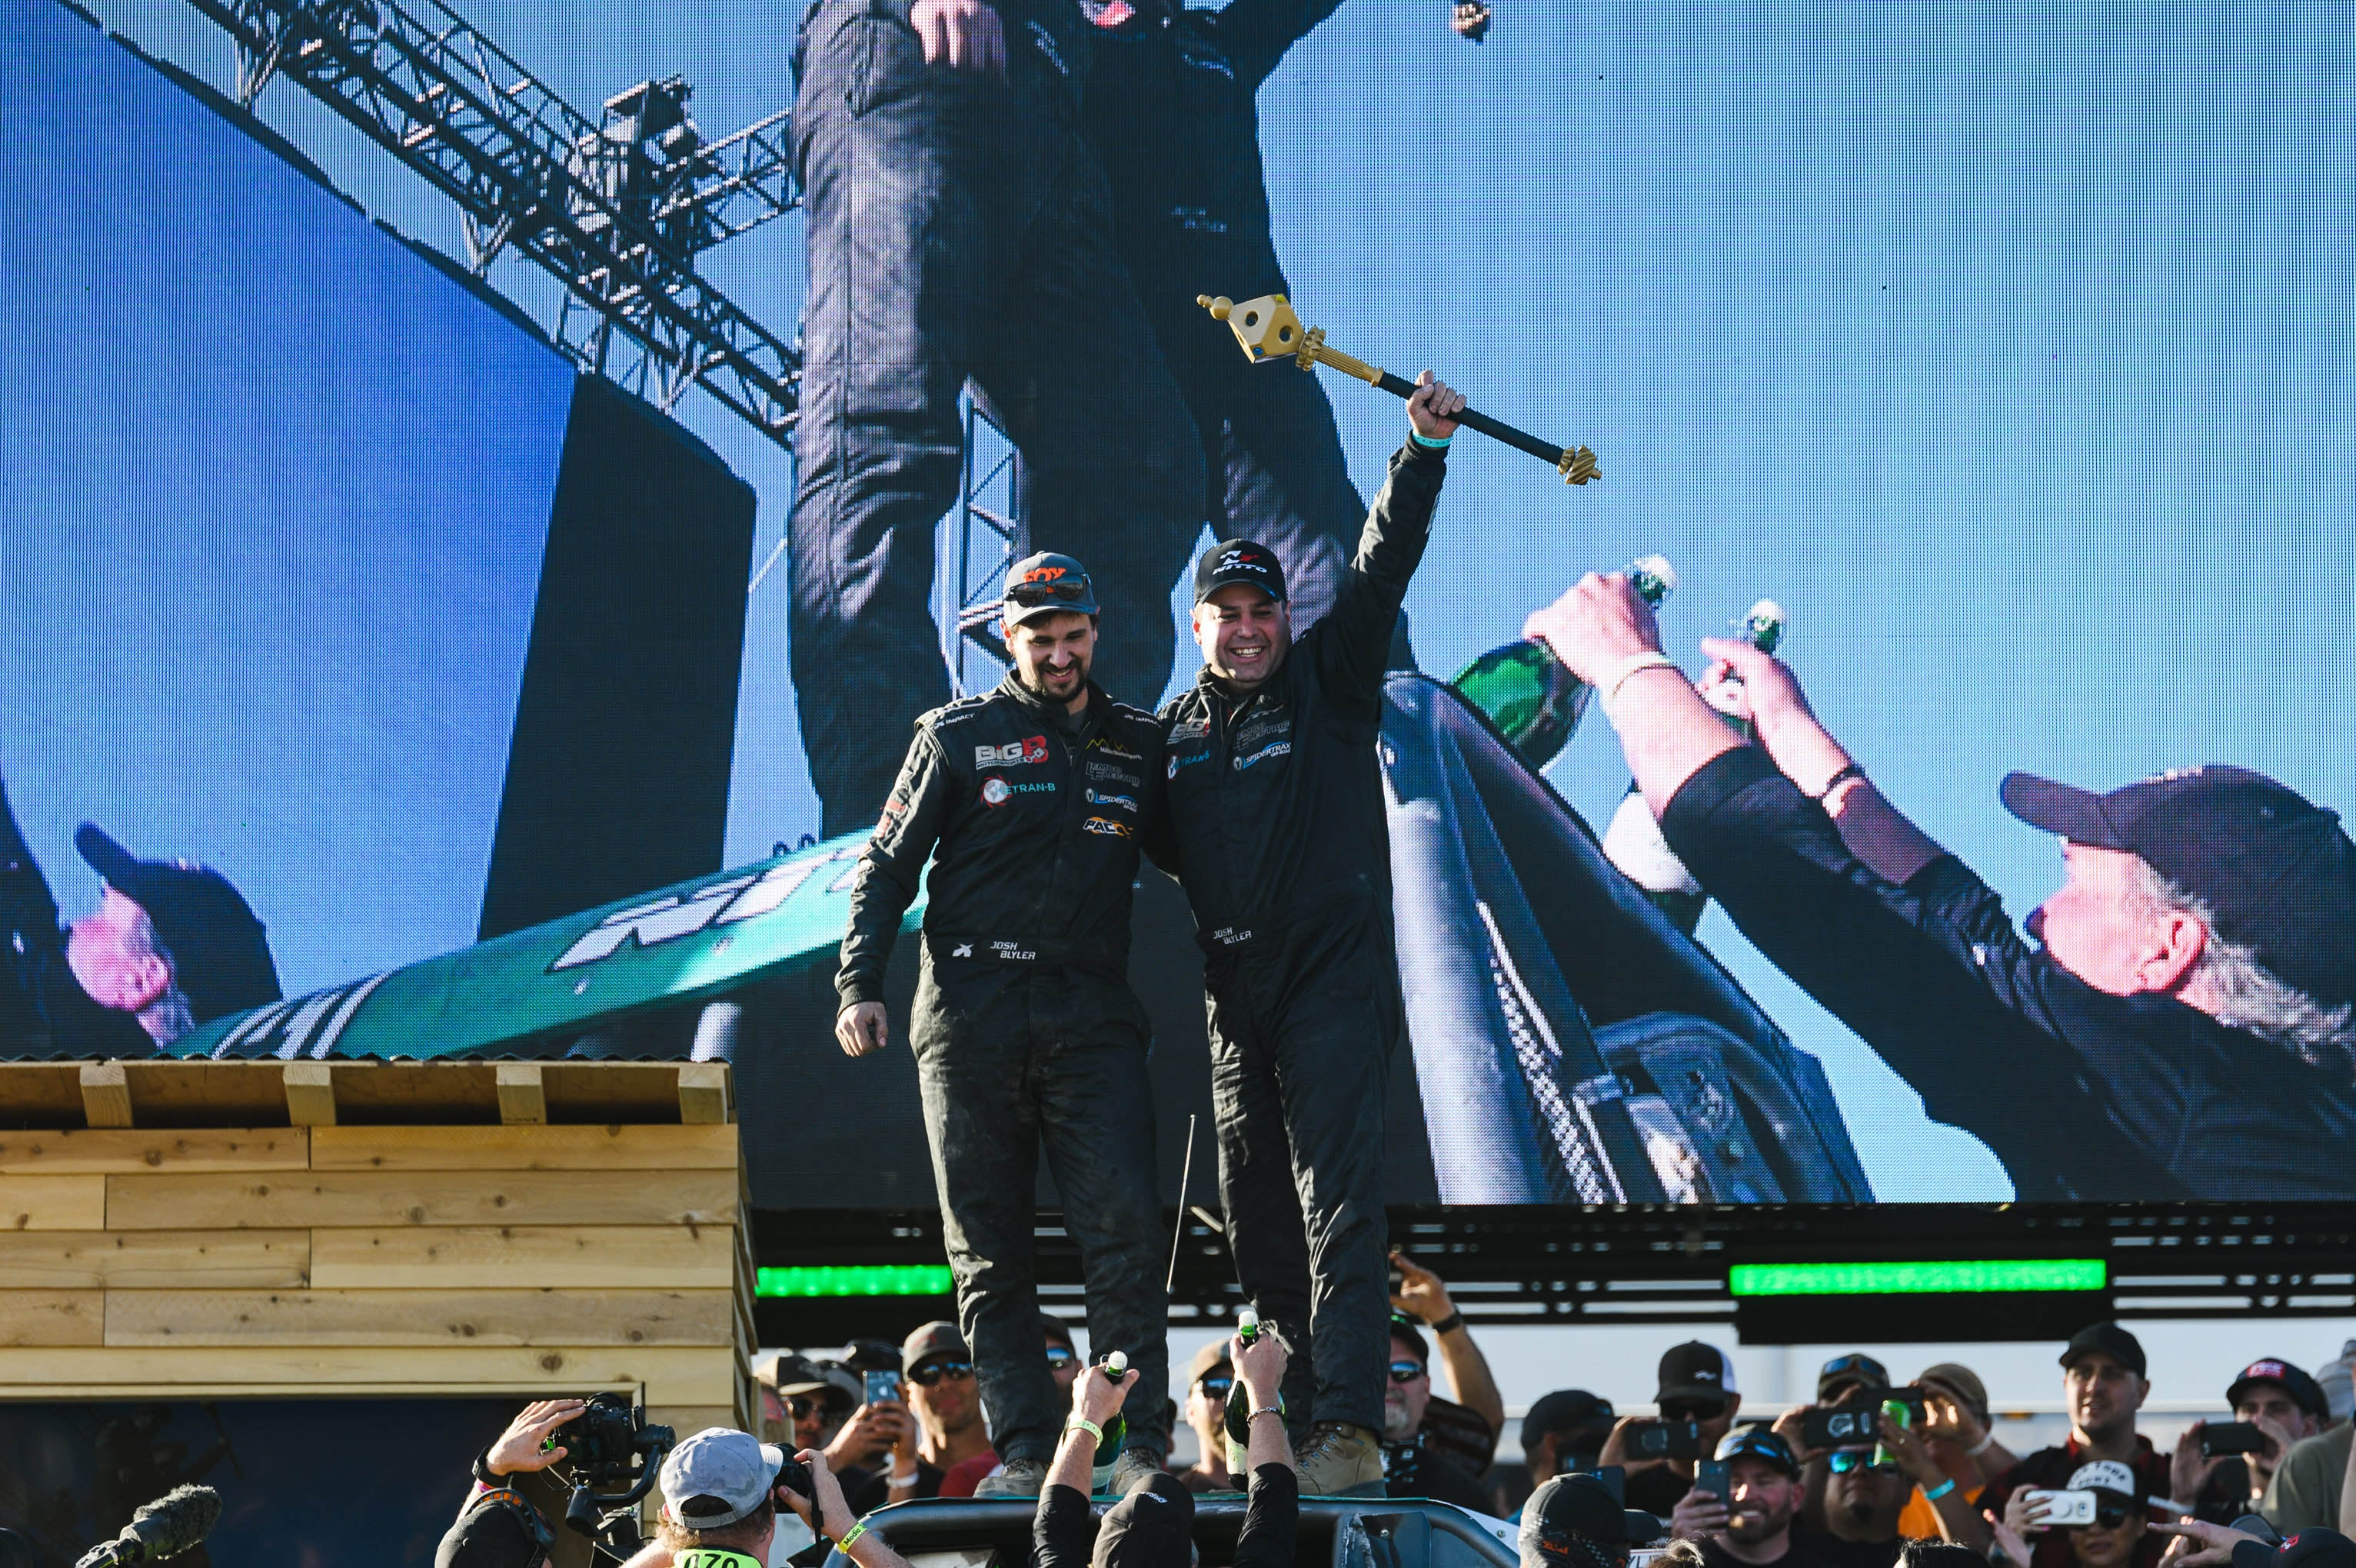 King of the Hammers 2020 winners celebrate